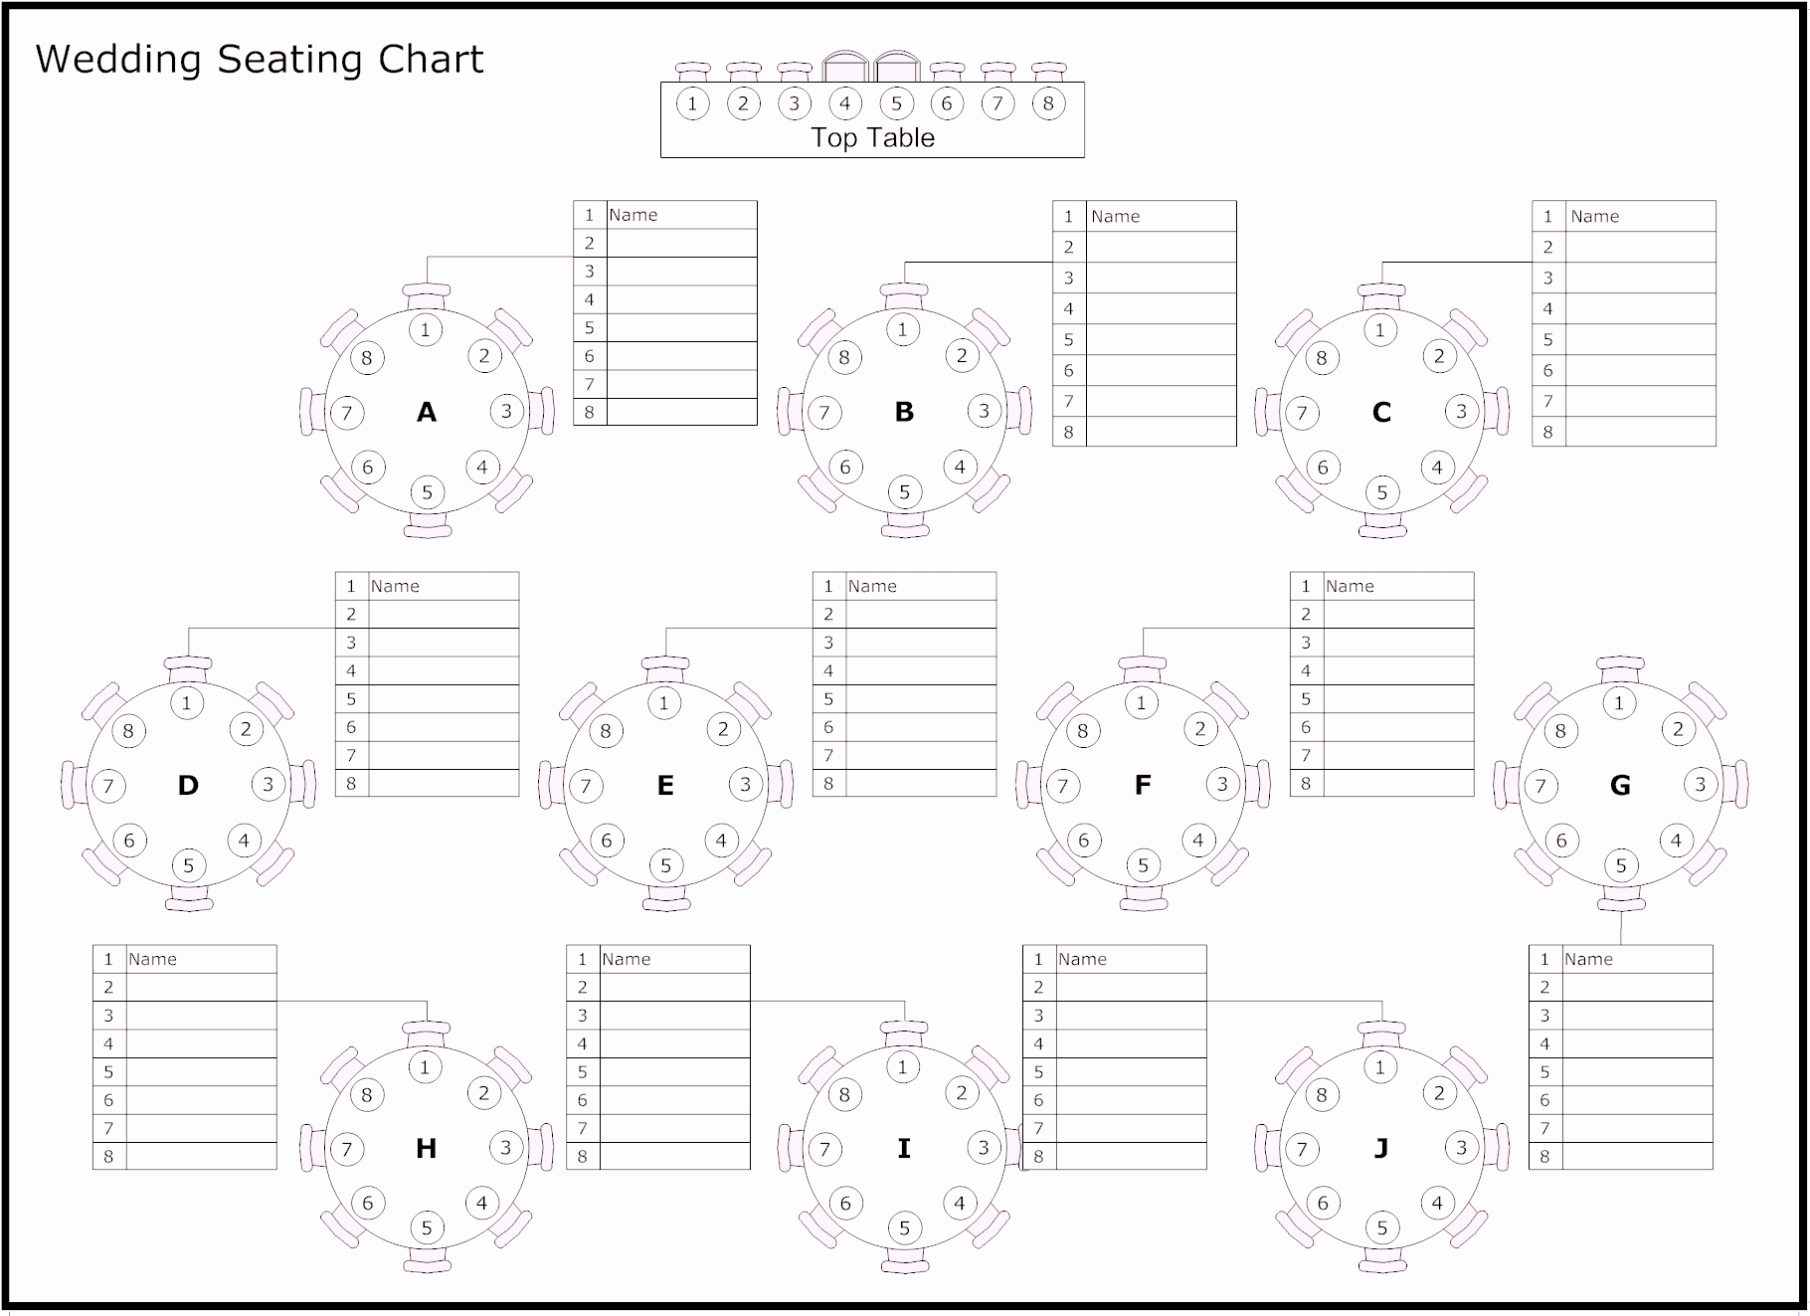 Make Seating Chart Online Free Lovely Free Table Of Reception & Wedding Seating Chart Template